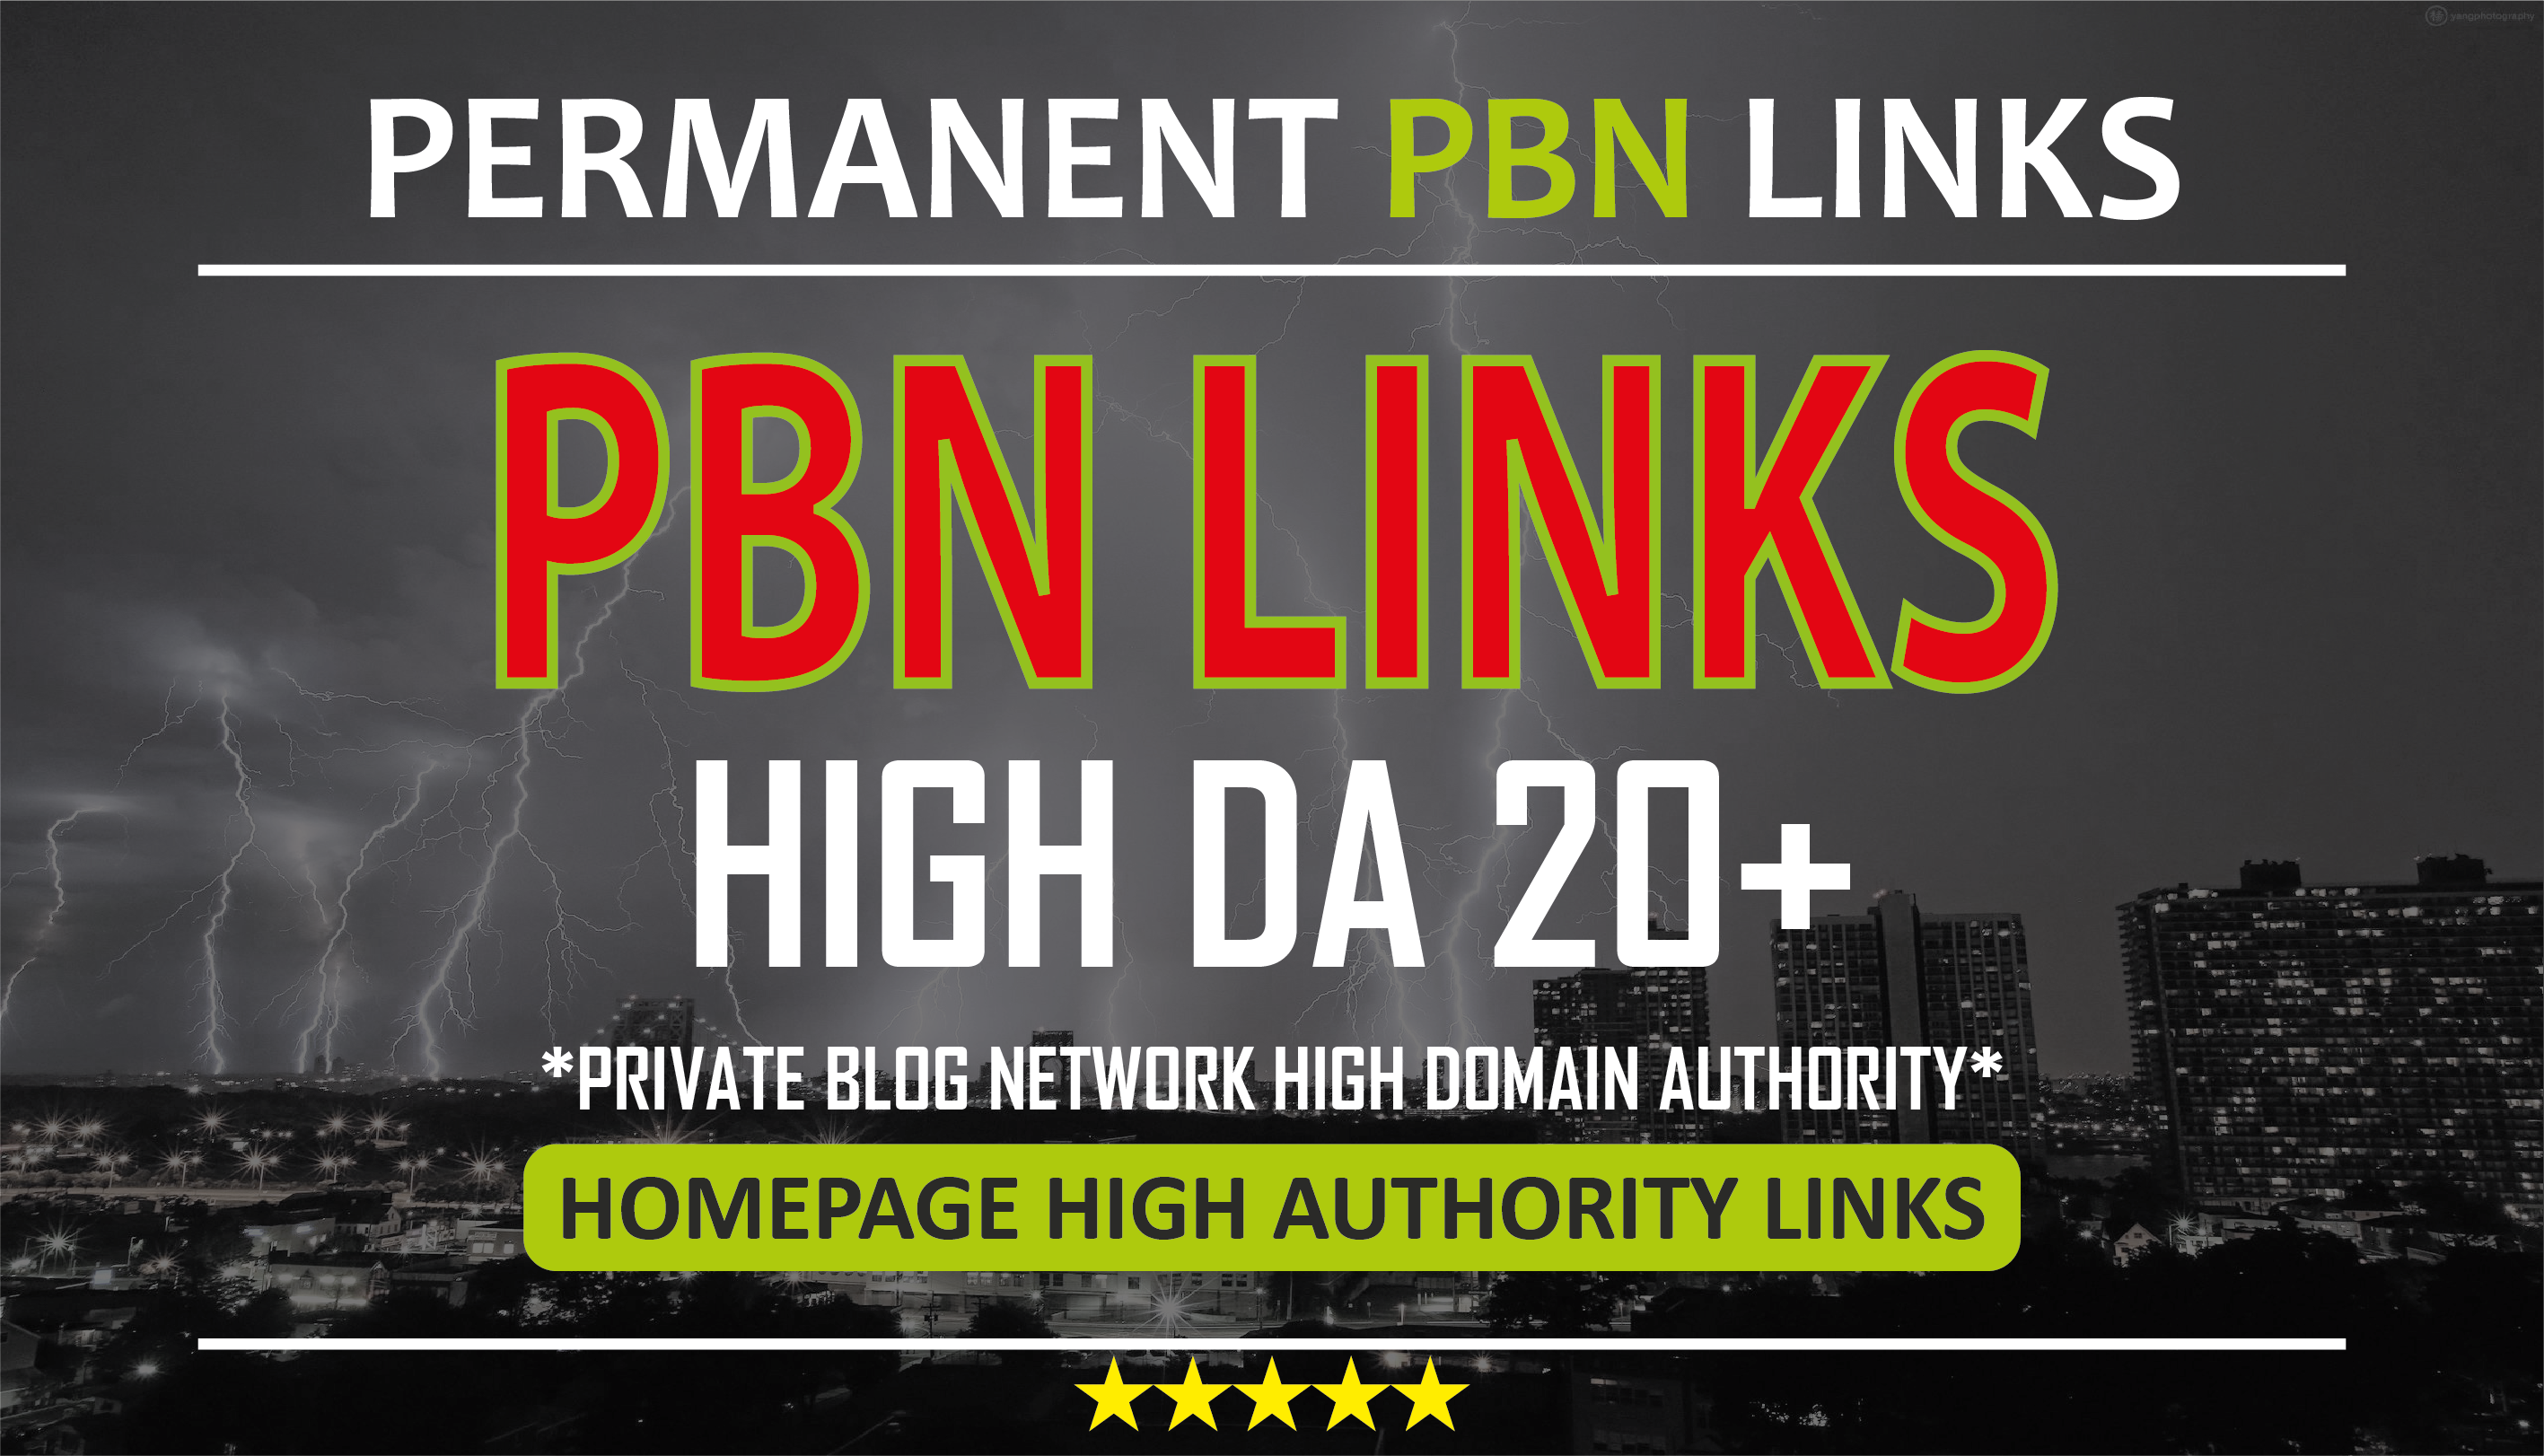 I will build 12 manual High DA 20 Plus PA TF CF Homepage PBN Backlinks - Dofollow Quality links